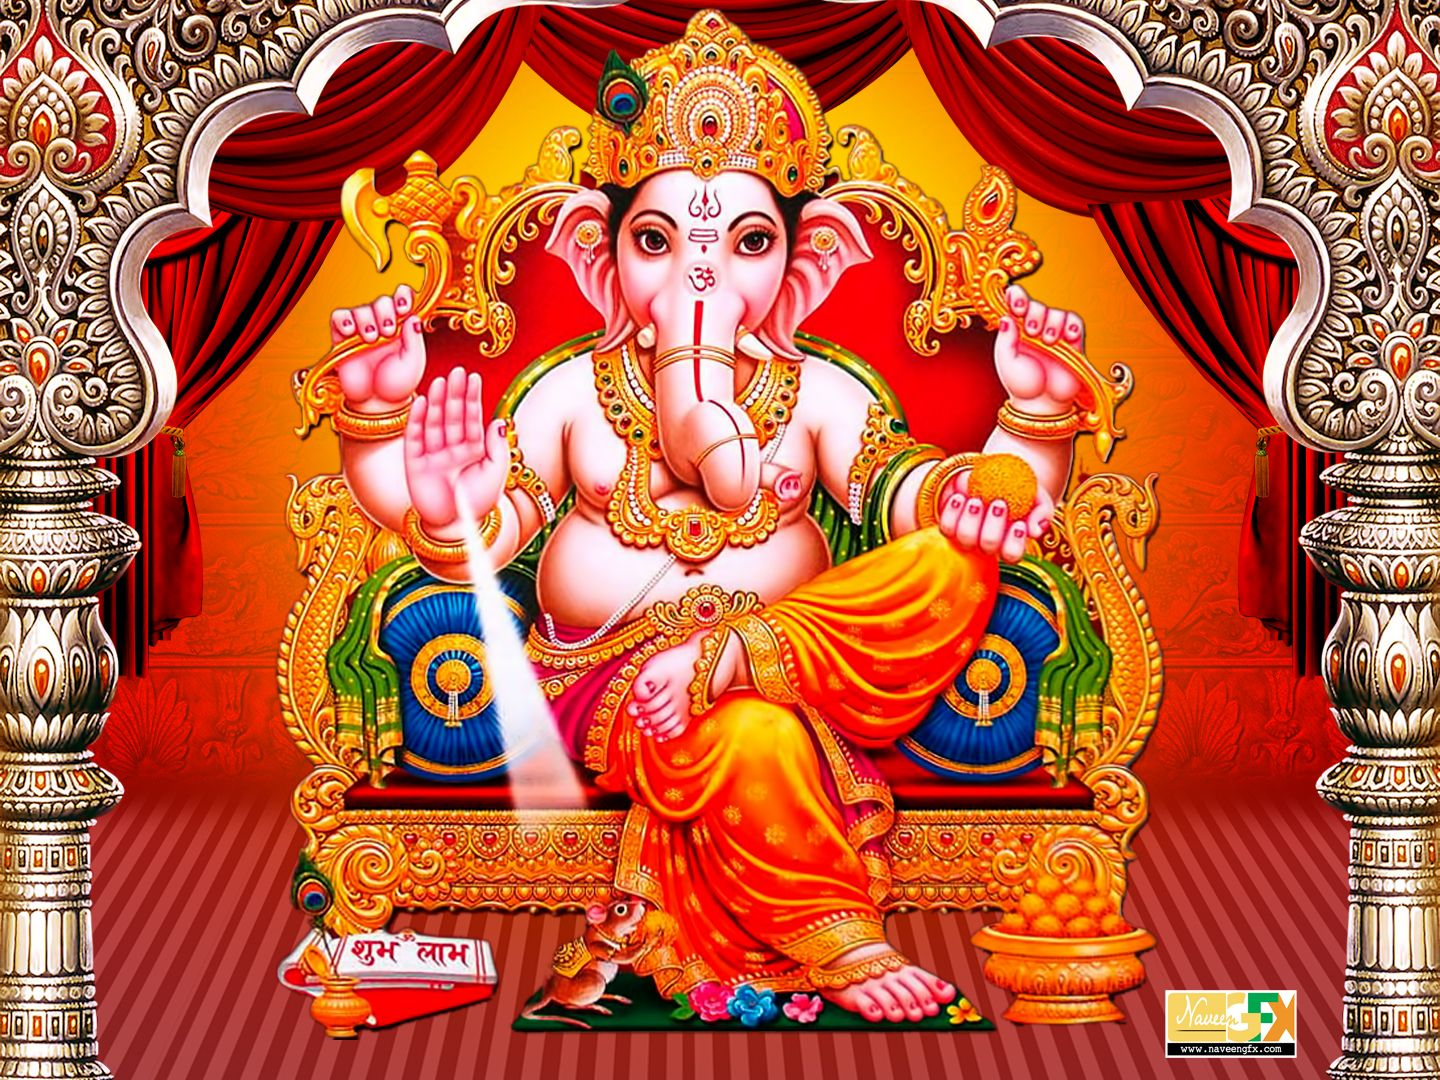 Lord Ganesha Hd Wallpapers: Lord Ganesha HD Images Wallpapers Free Downloads